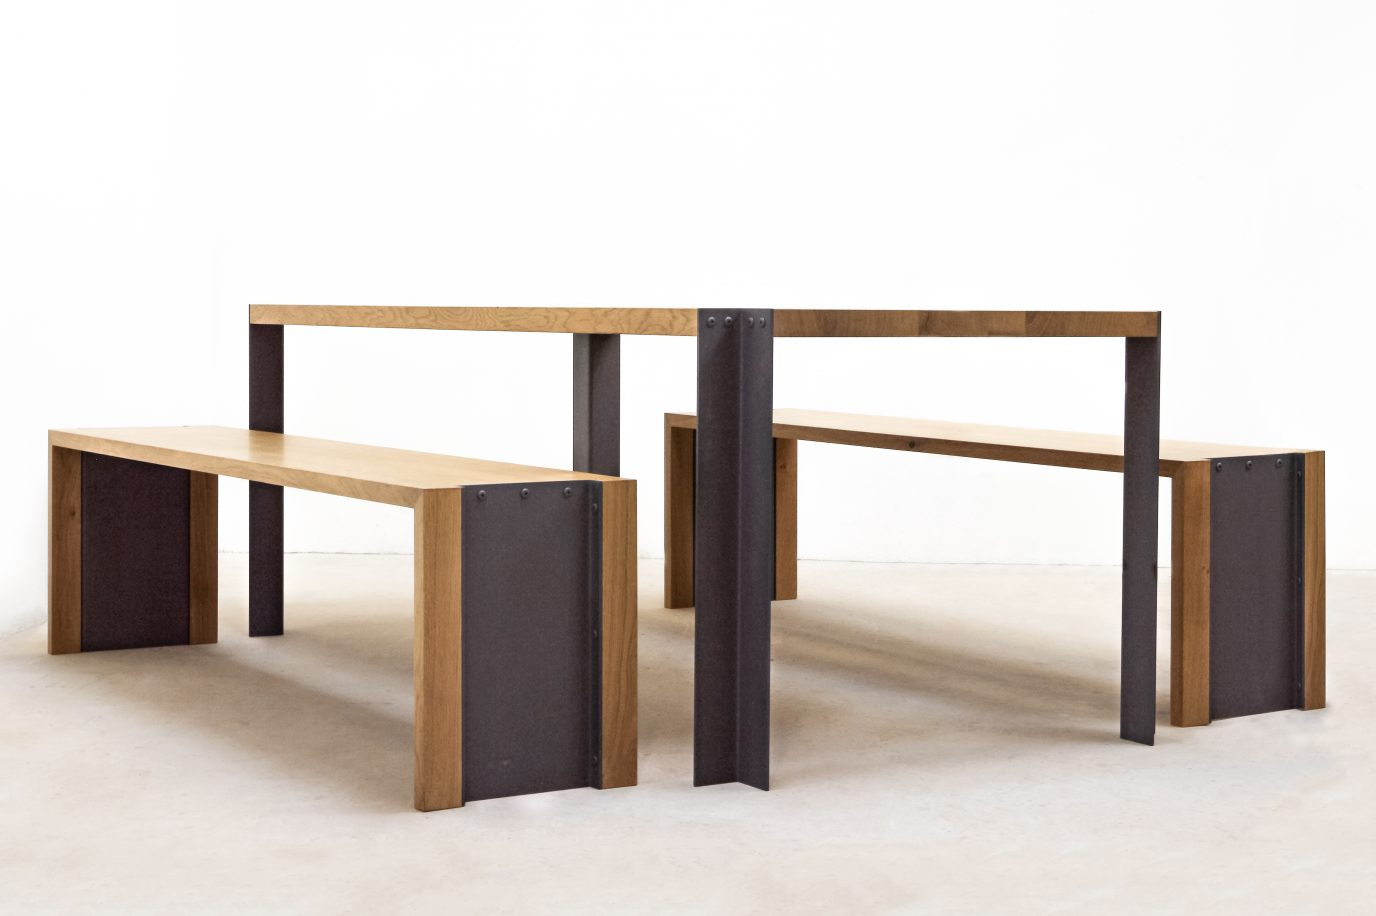 Ensemble table et bancs f lsom studio - Ensemble table et banc ...